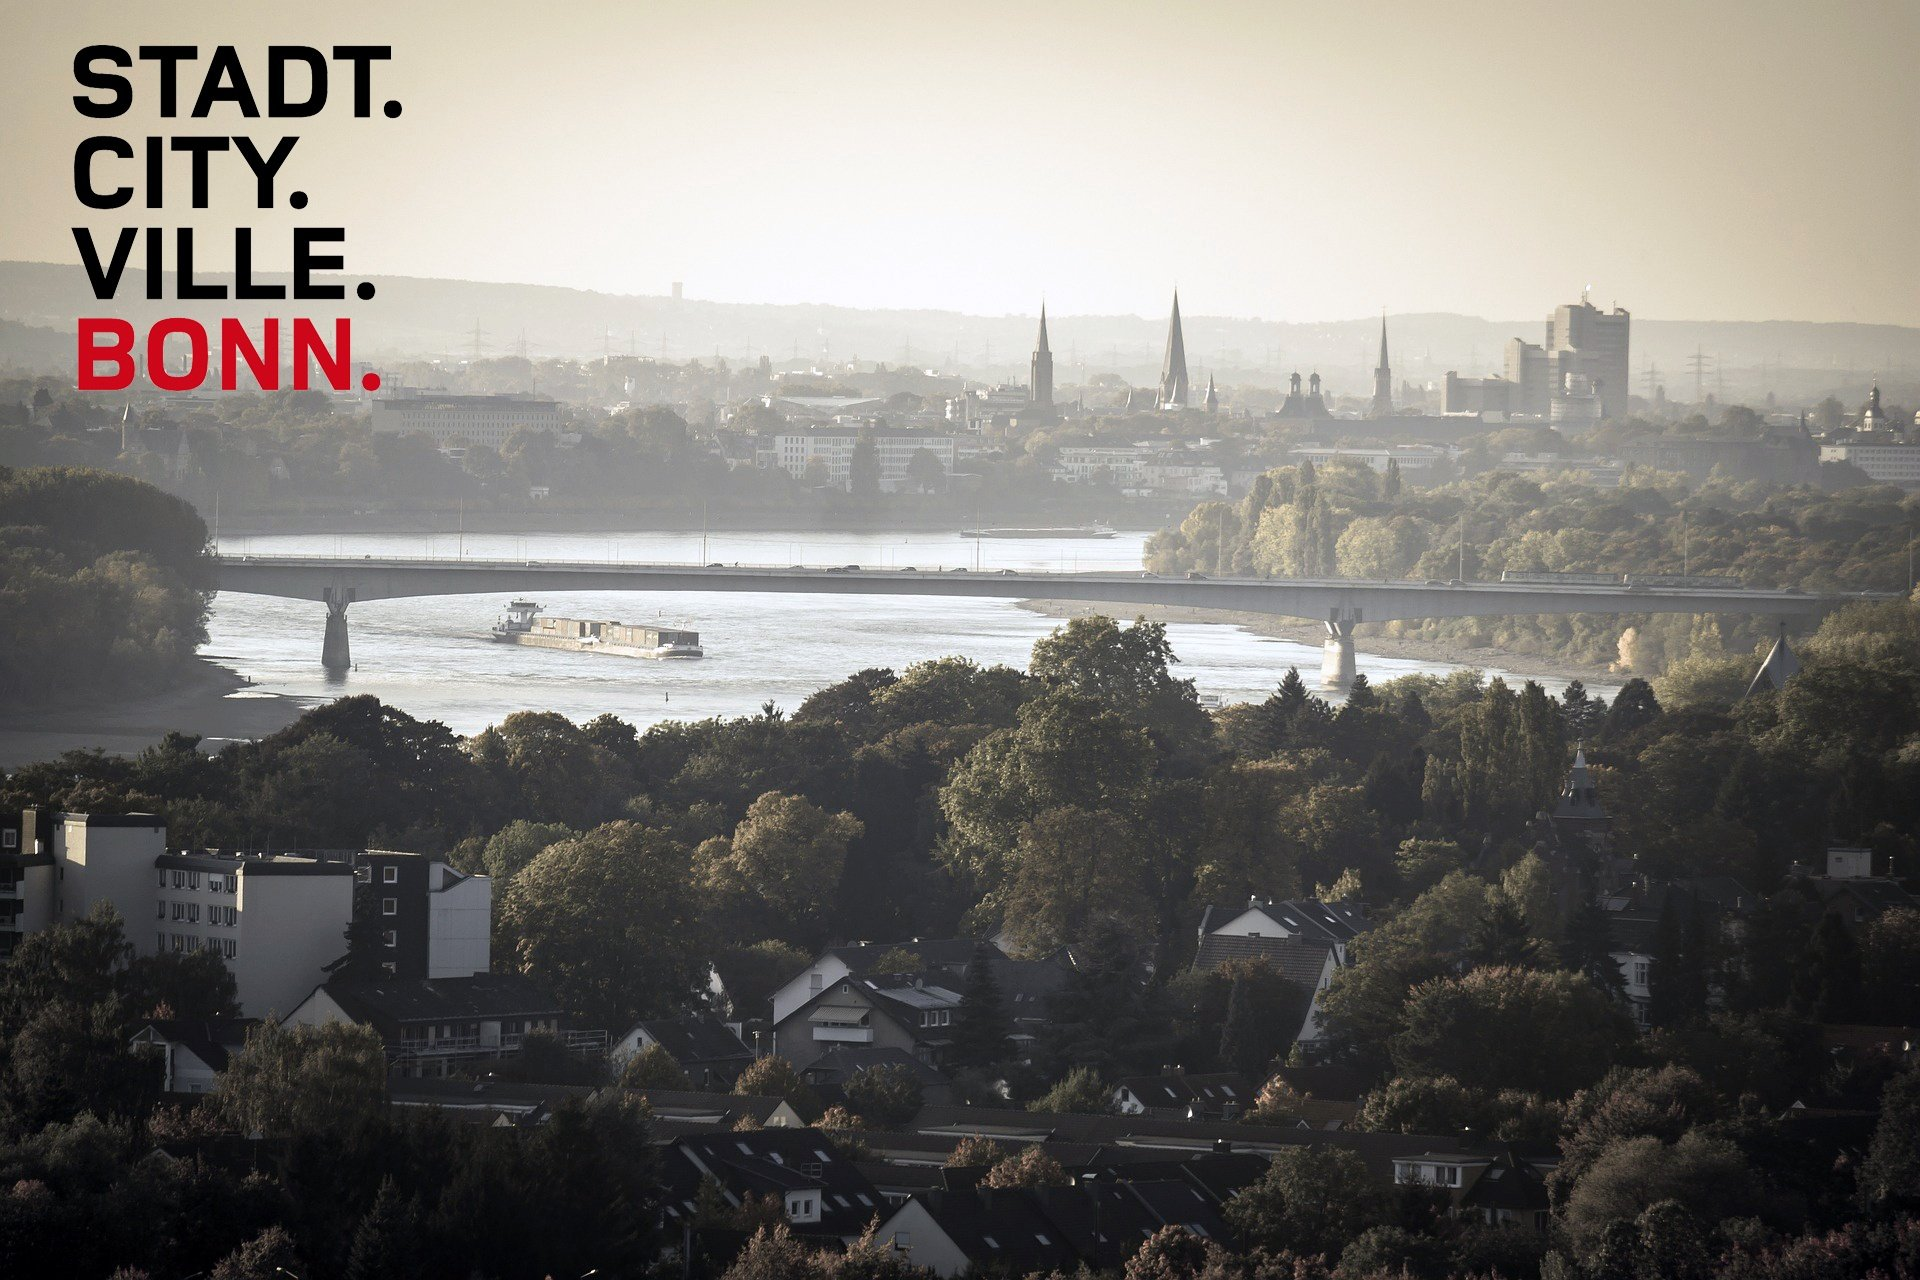 Living and working in Bonn